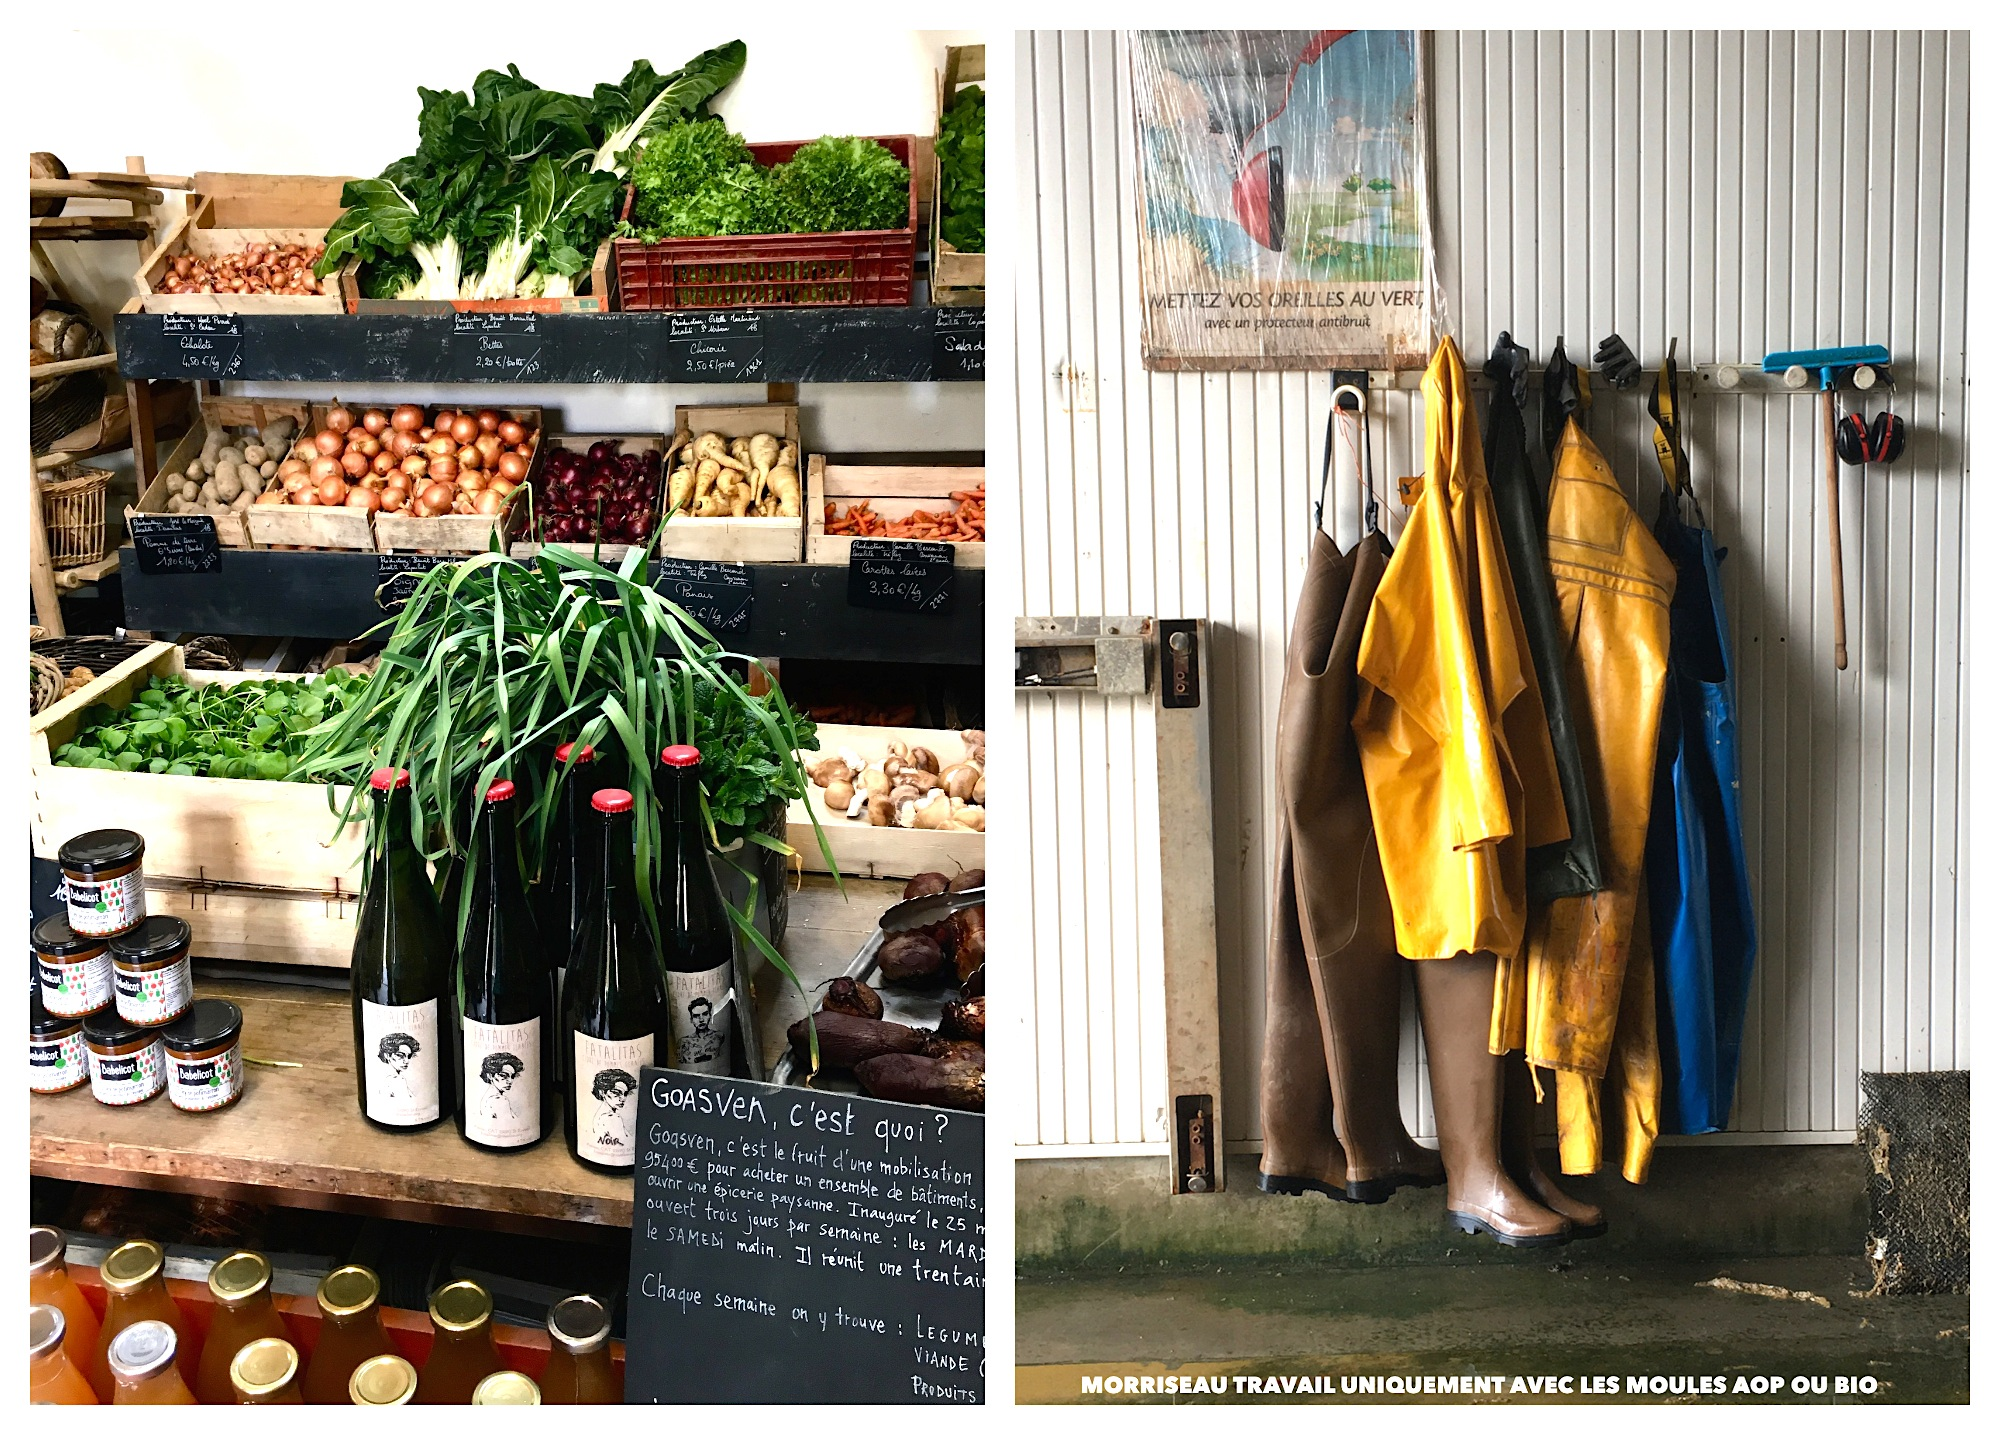 Here are our favorite Breton sights and the artisanal gastronomic flavors that accompany them. A market stand selling fresh vegetables and cider (left). A beachside cabin with yellow raincoats and wellies (right).